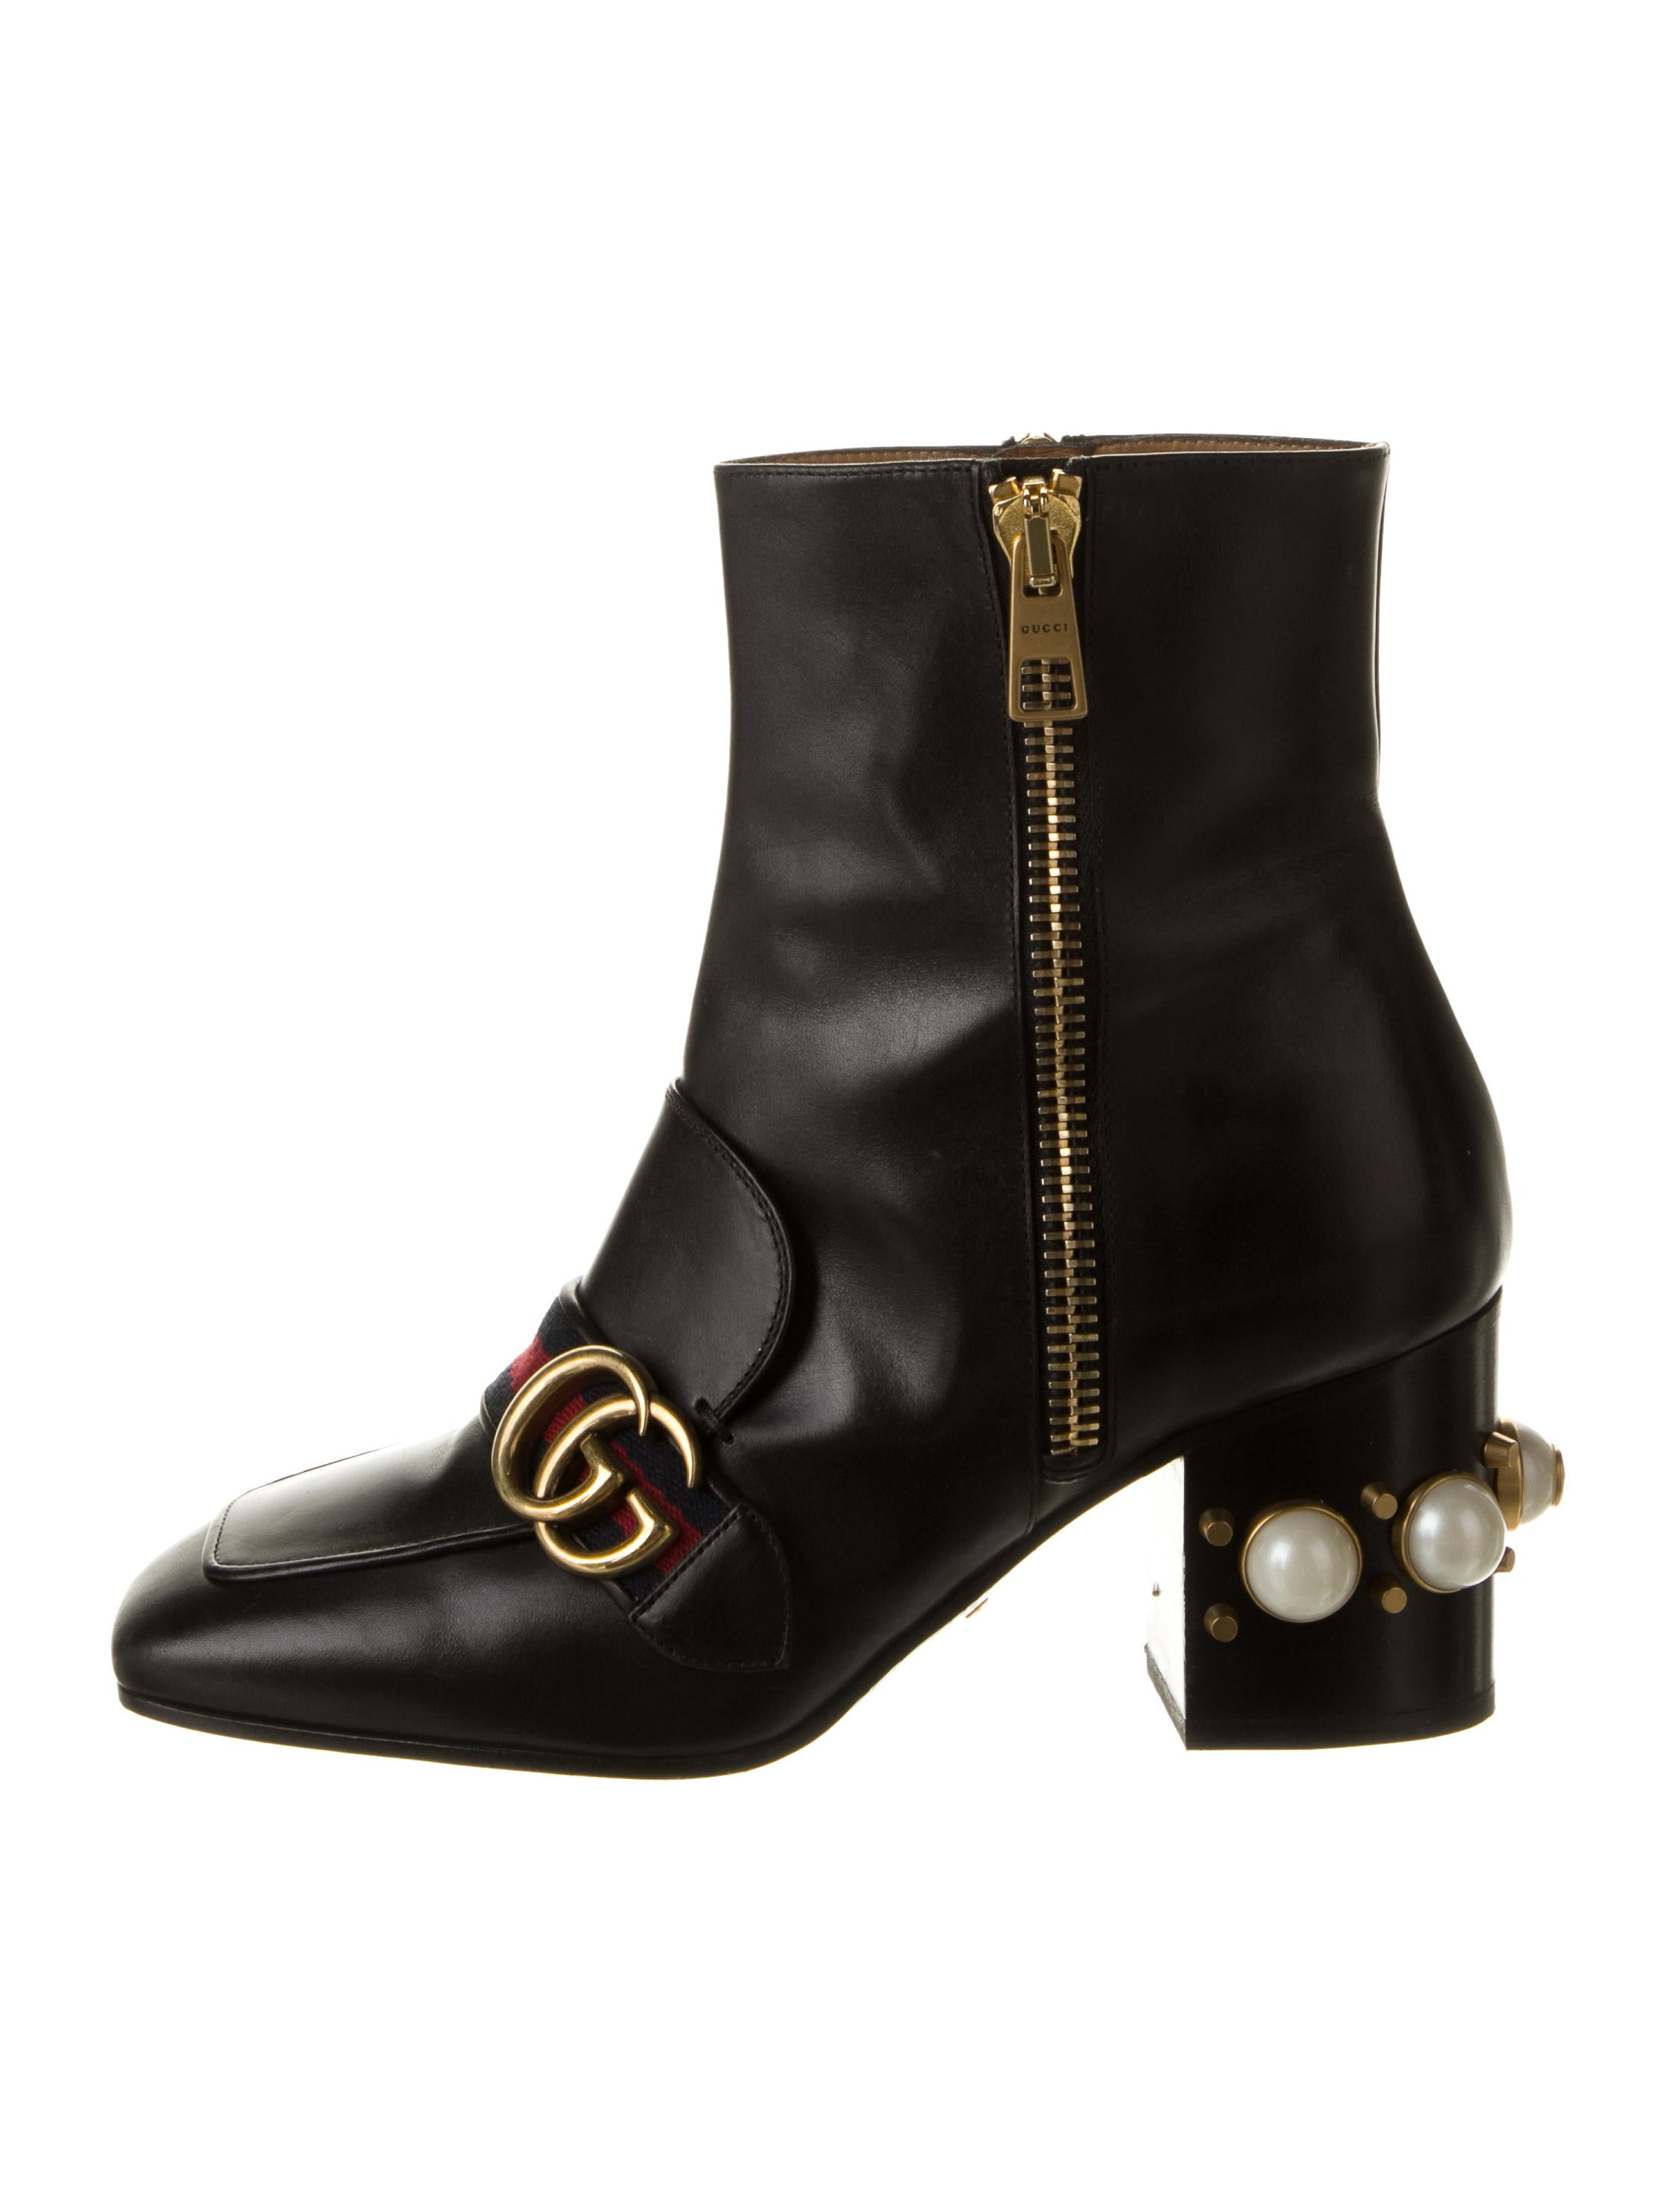 Gucci Peyton Ankle Boots - Shoes